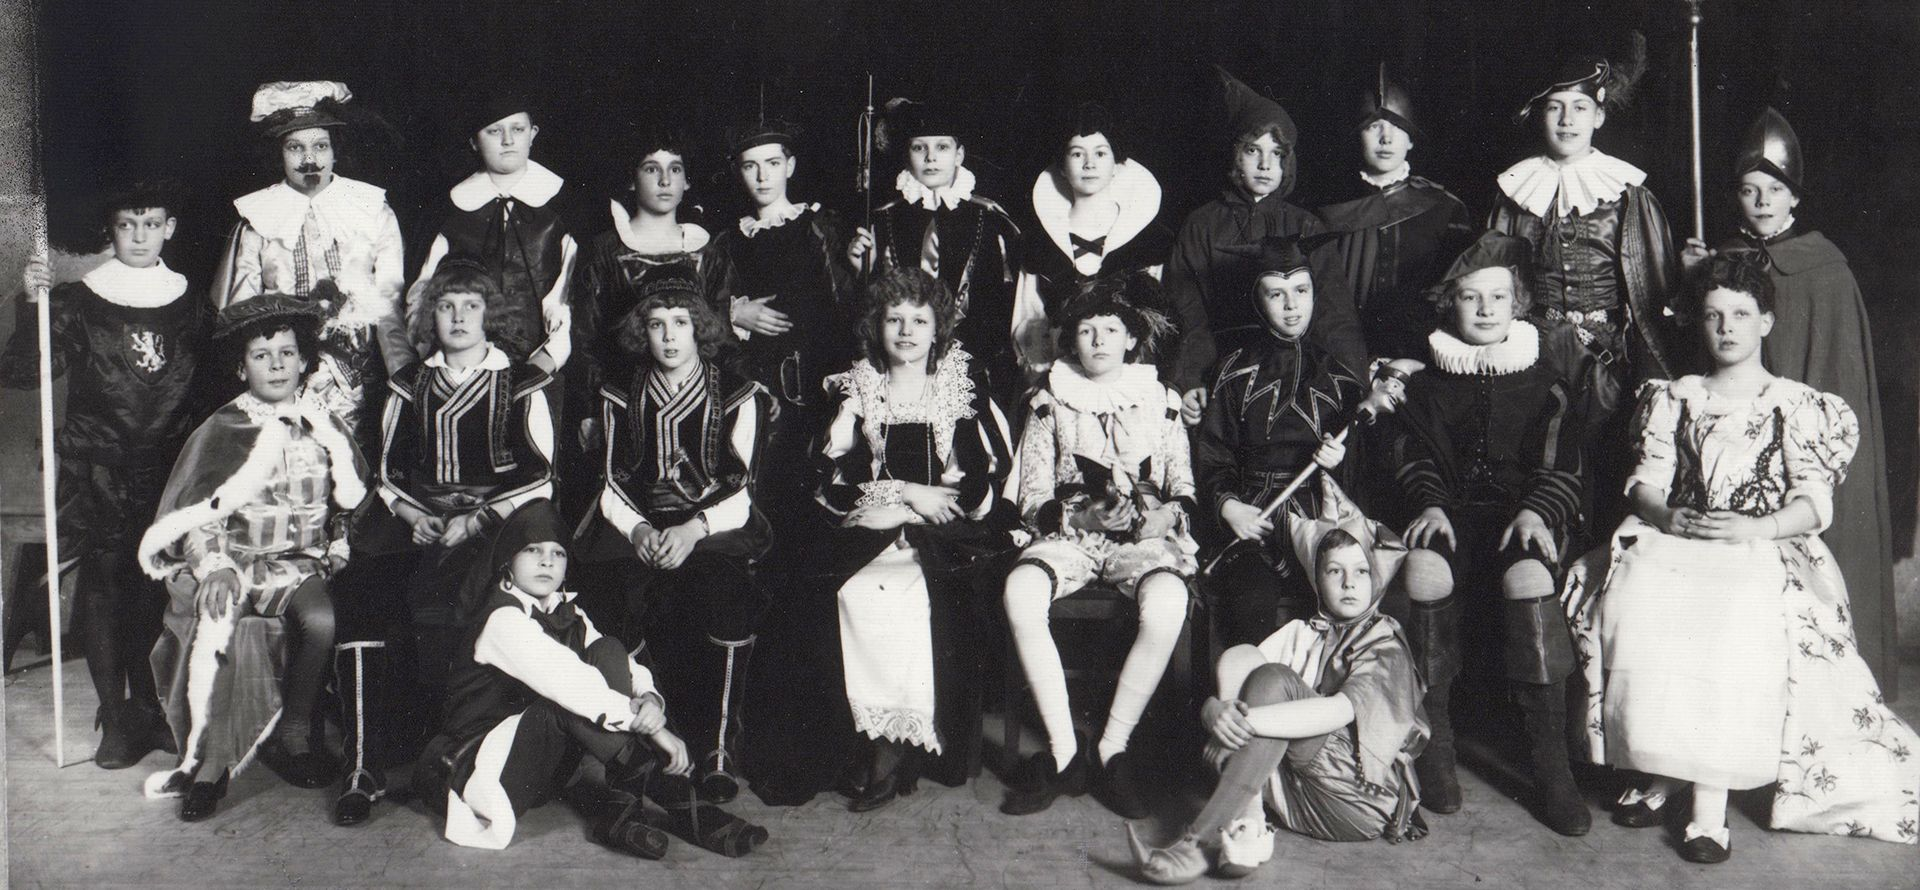 1920, Twelfth Night